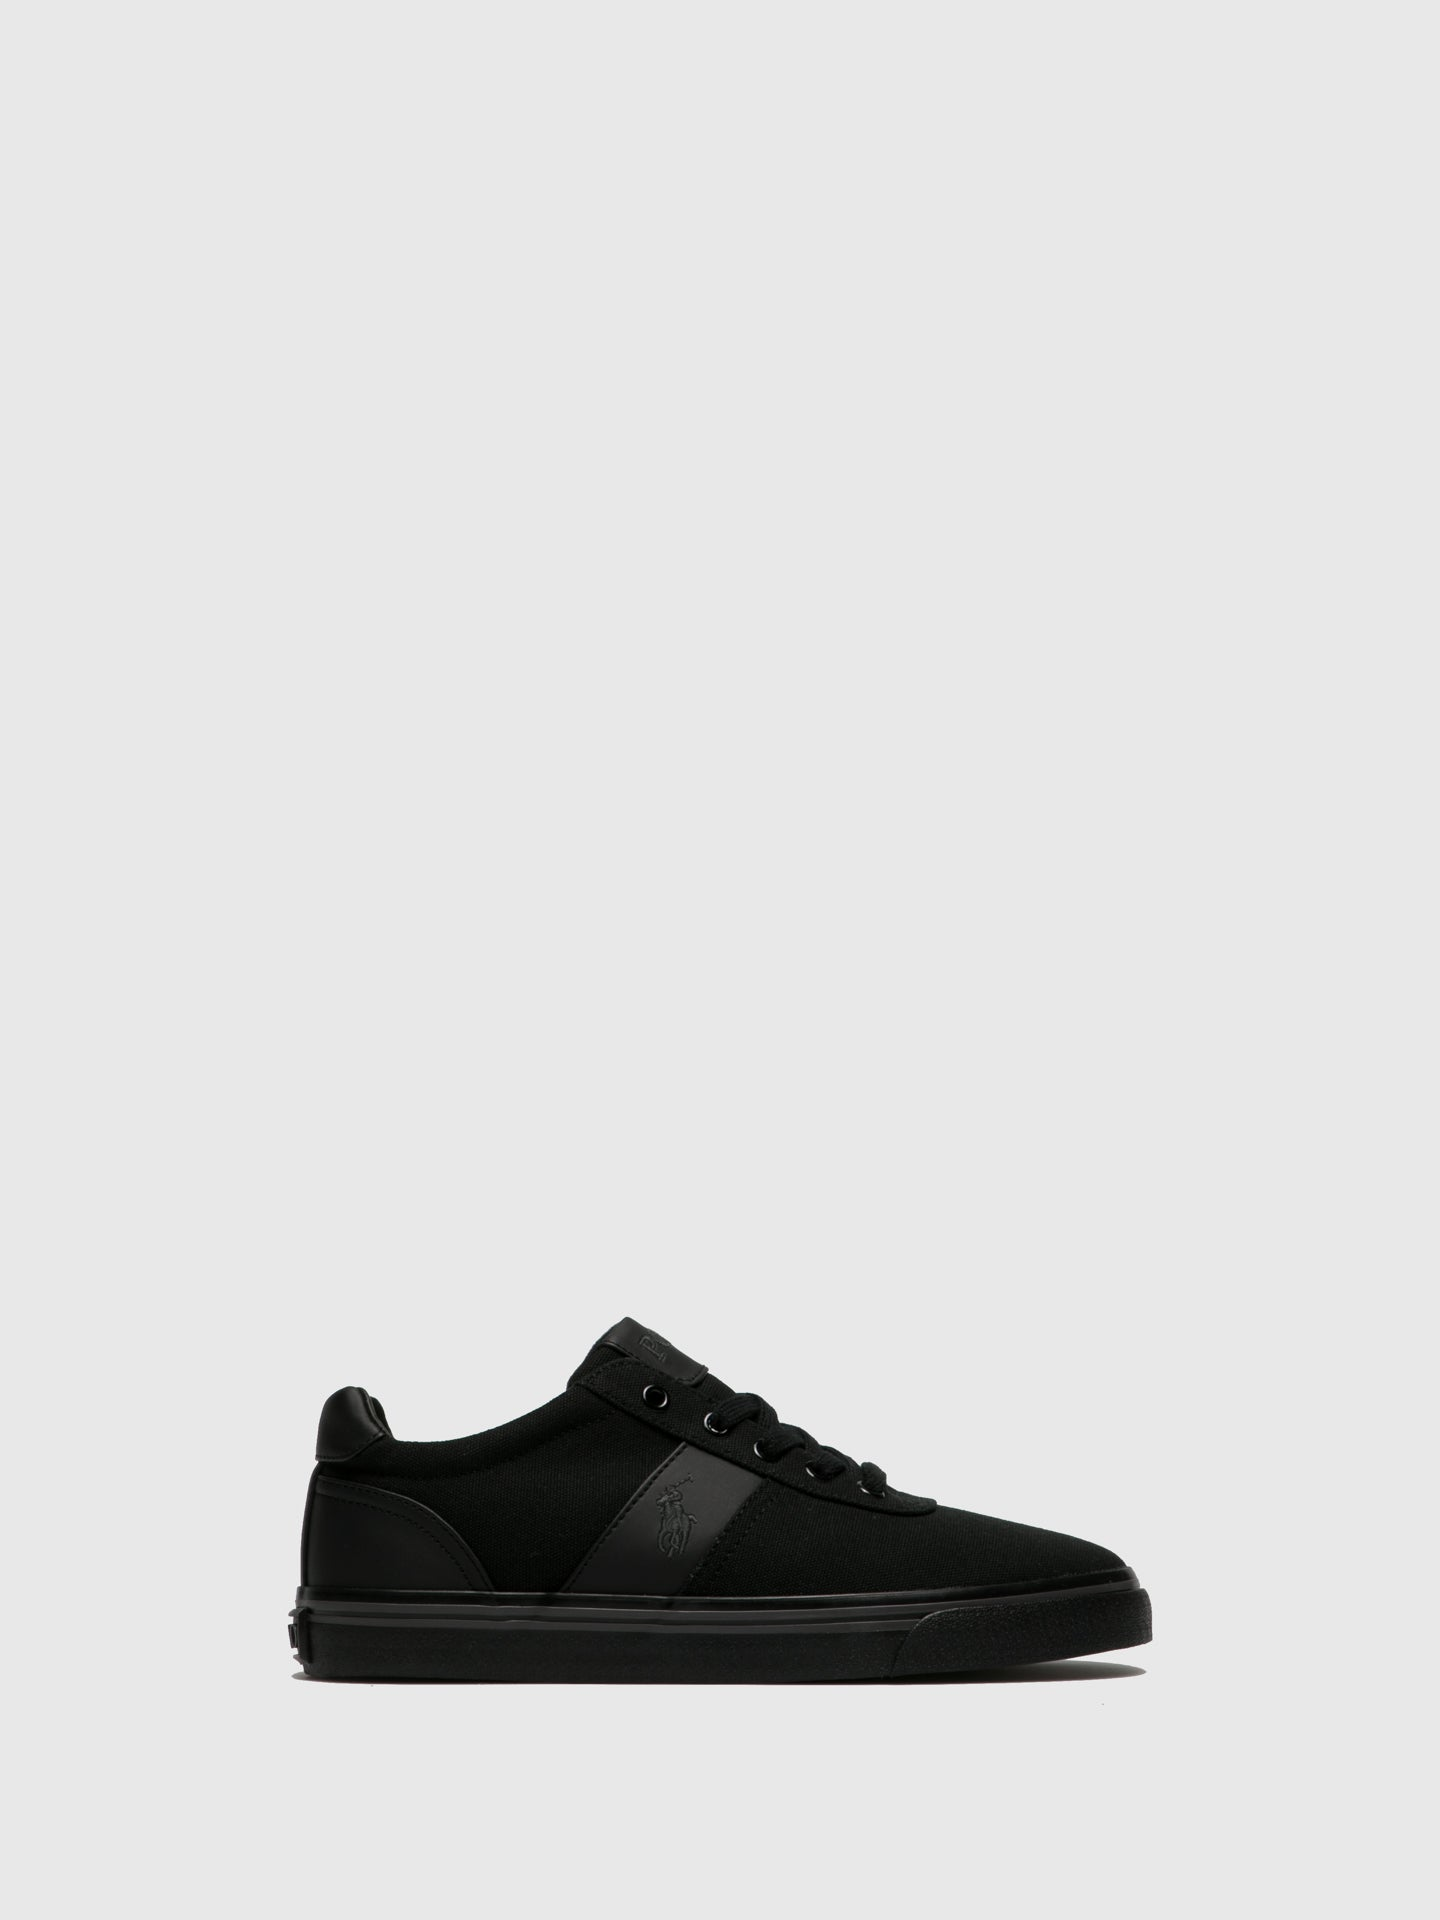 RALPH LAUREN Black Lace-up Trainers